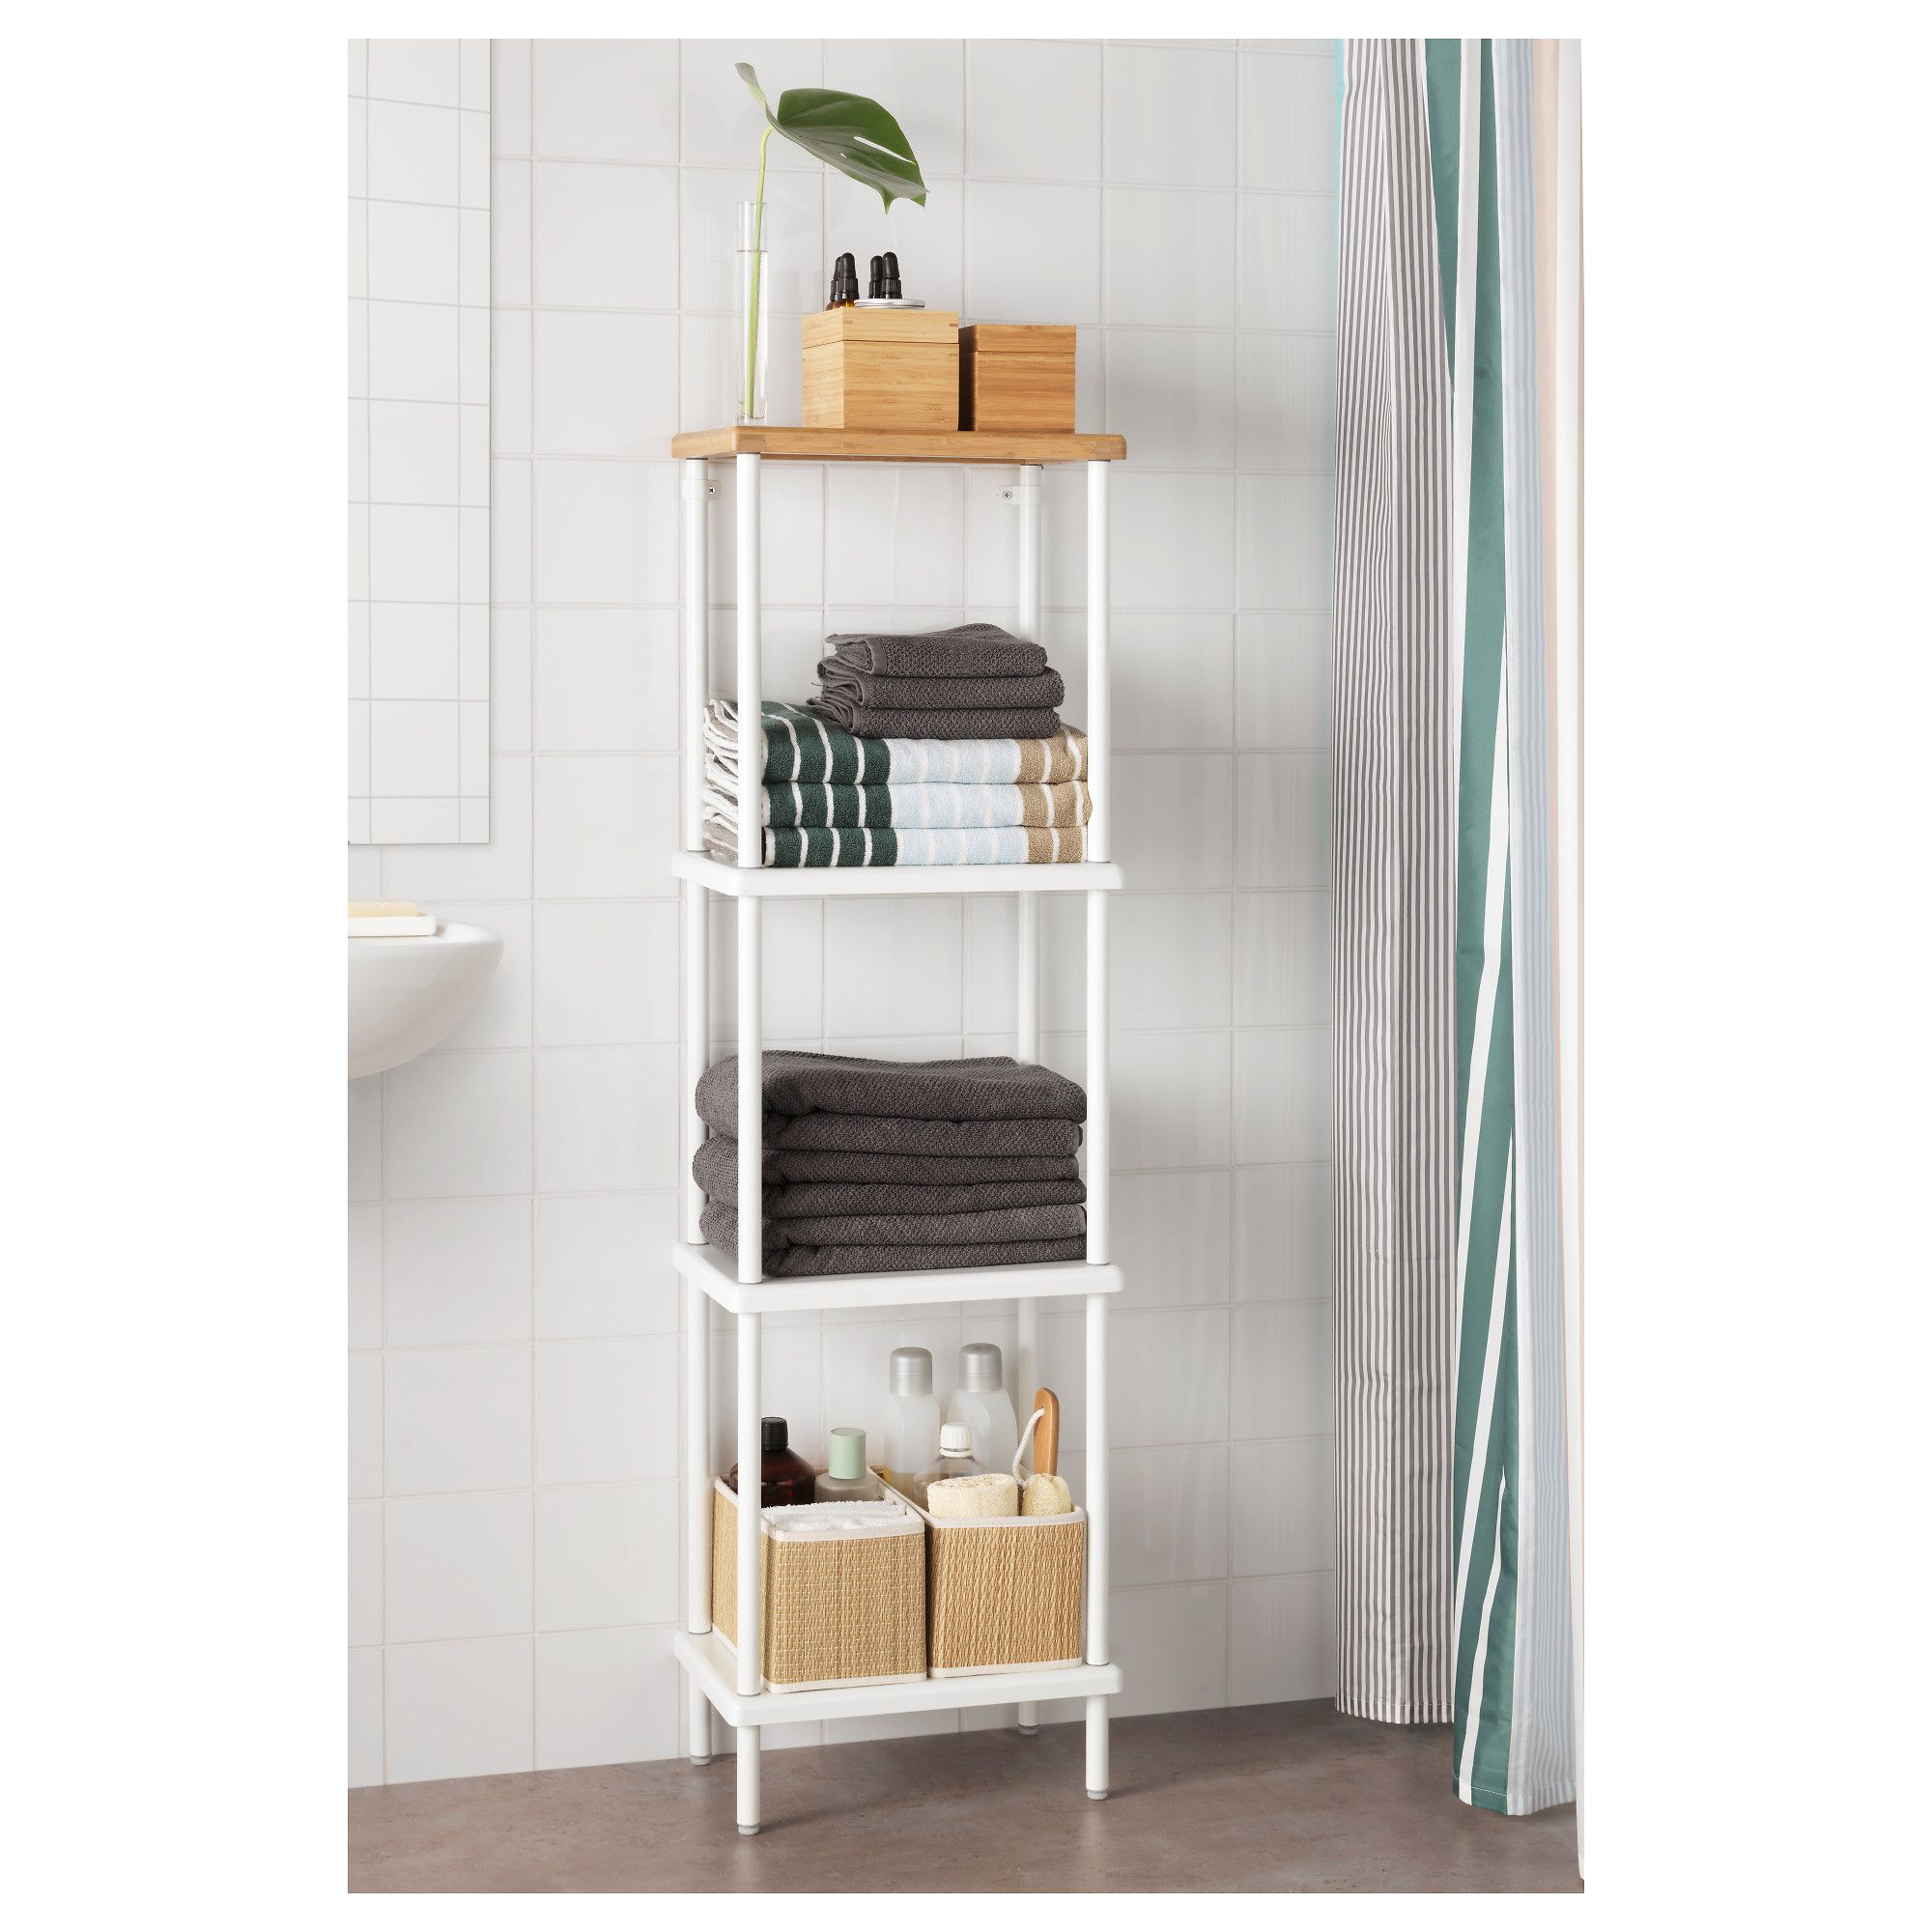 Muskan Regal Weiss Ikea Deutschland In 2020 Regal Weiss Ikea Regal